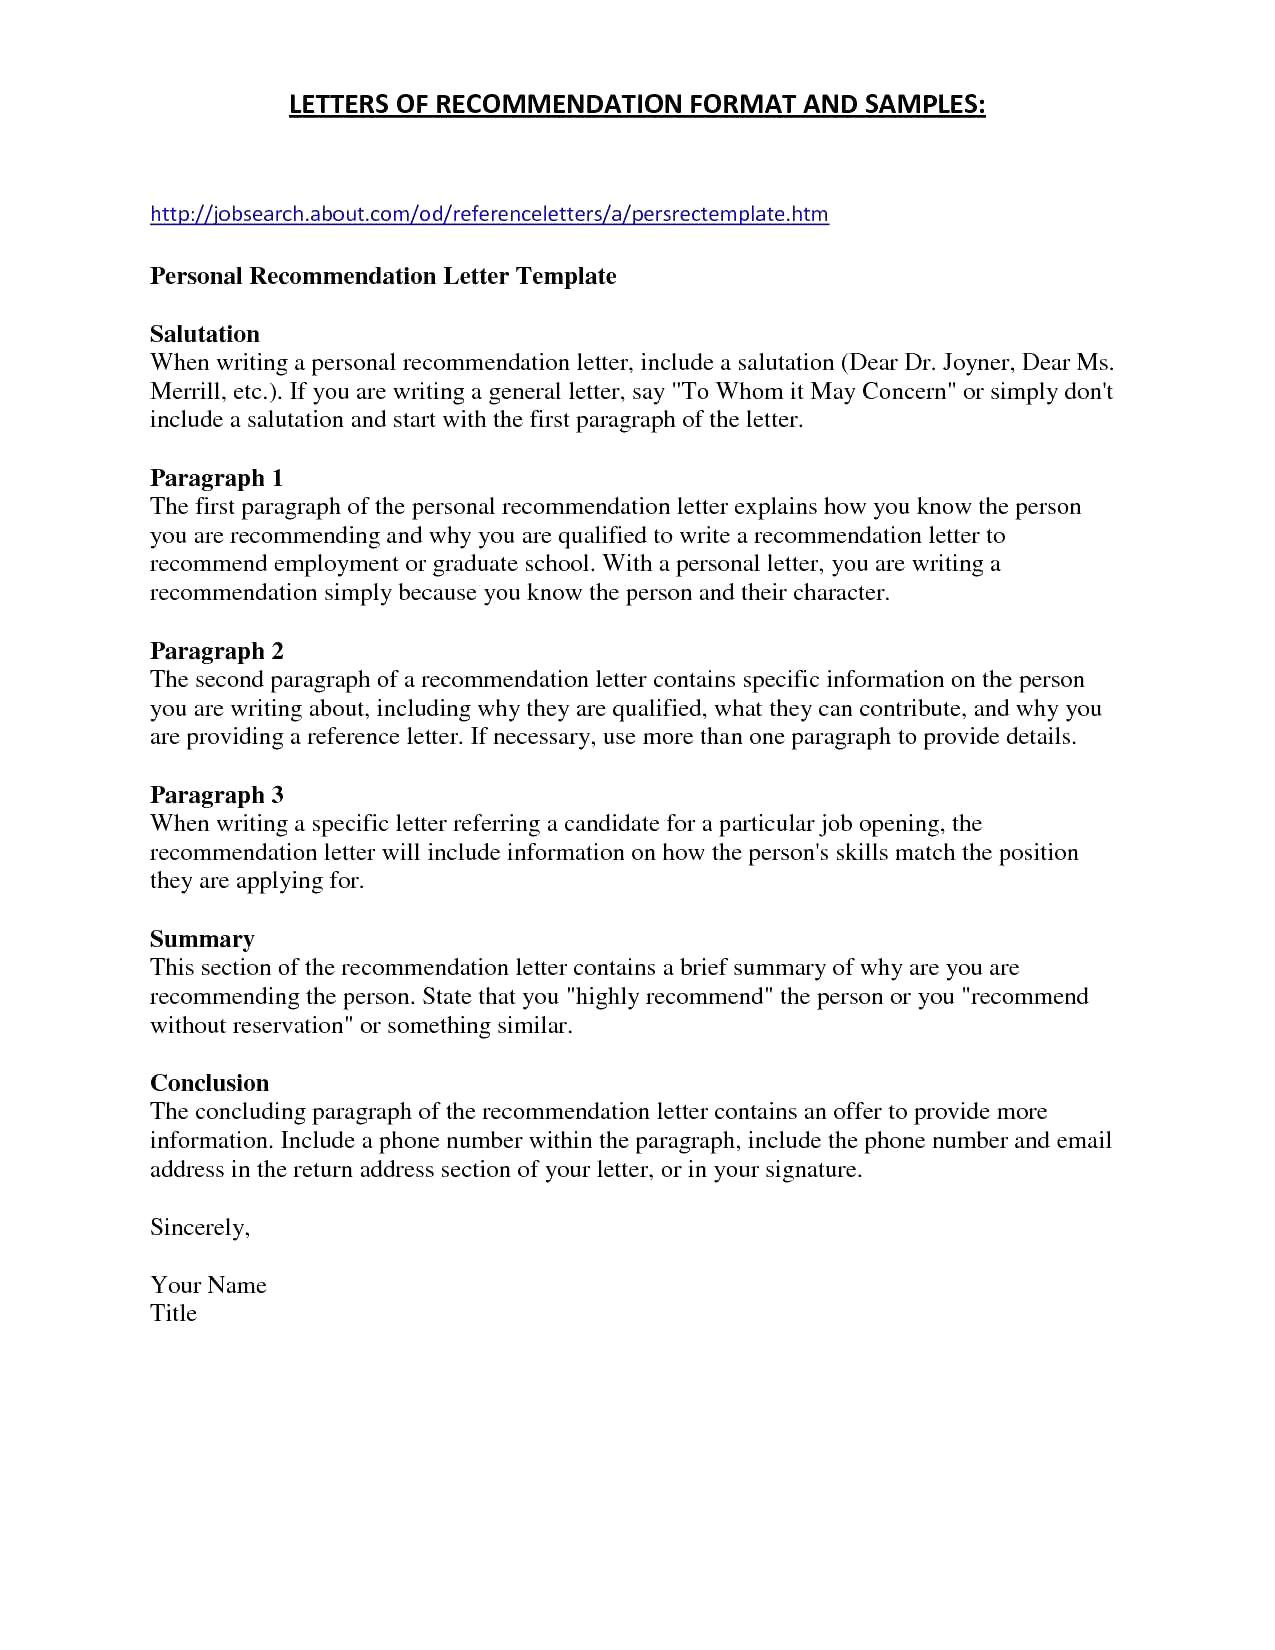 What Does Recipient Mean On A Cover Letter Personal Recommendation Letter Template Free Samples